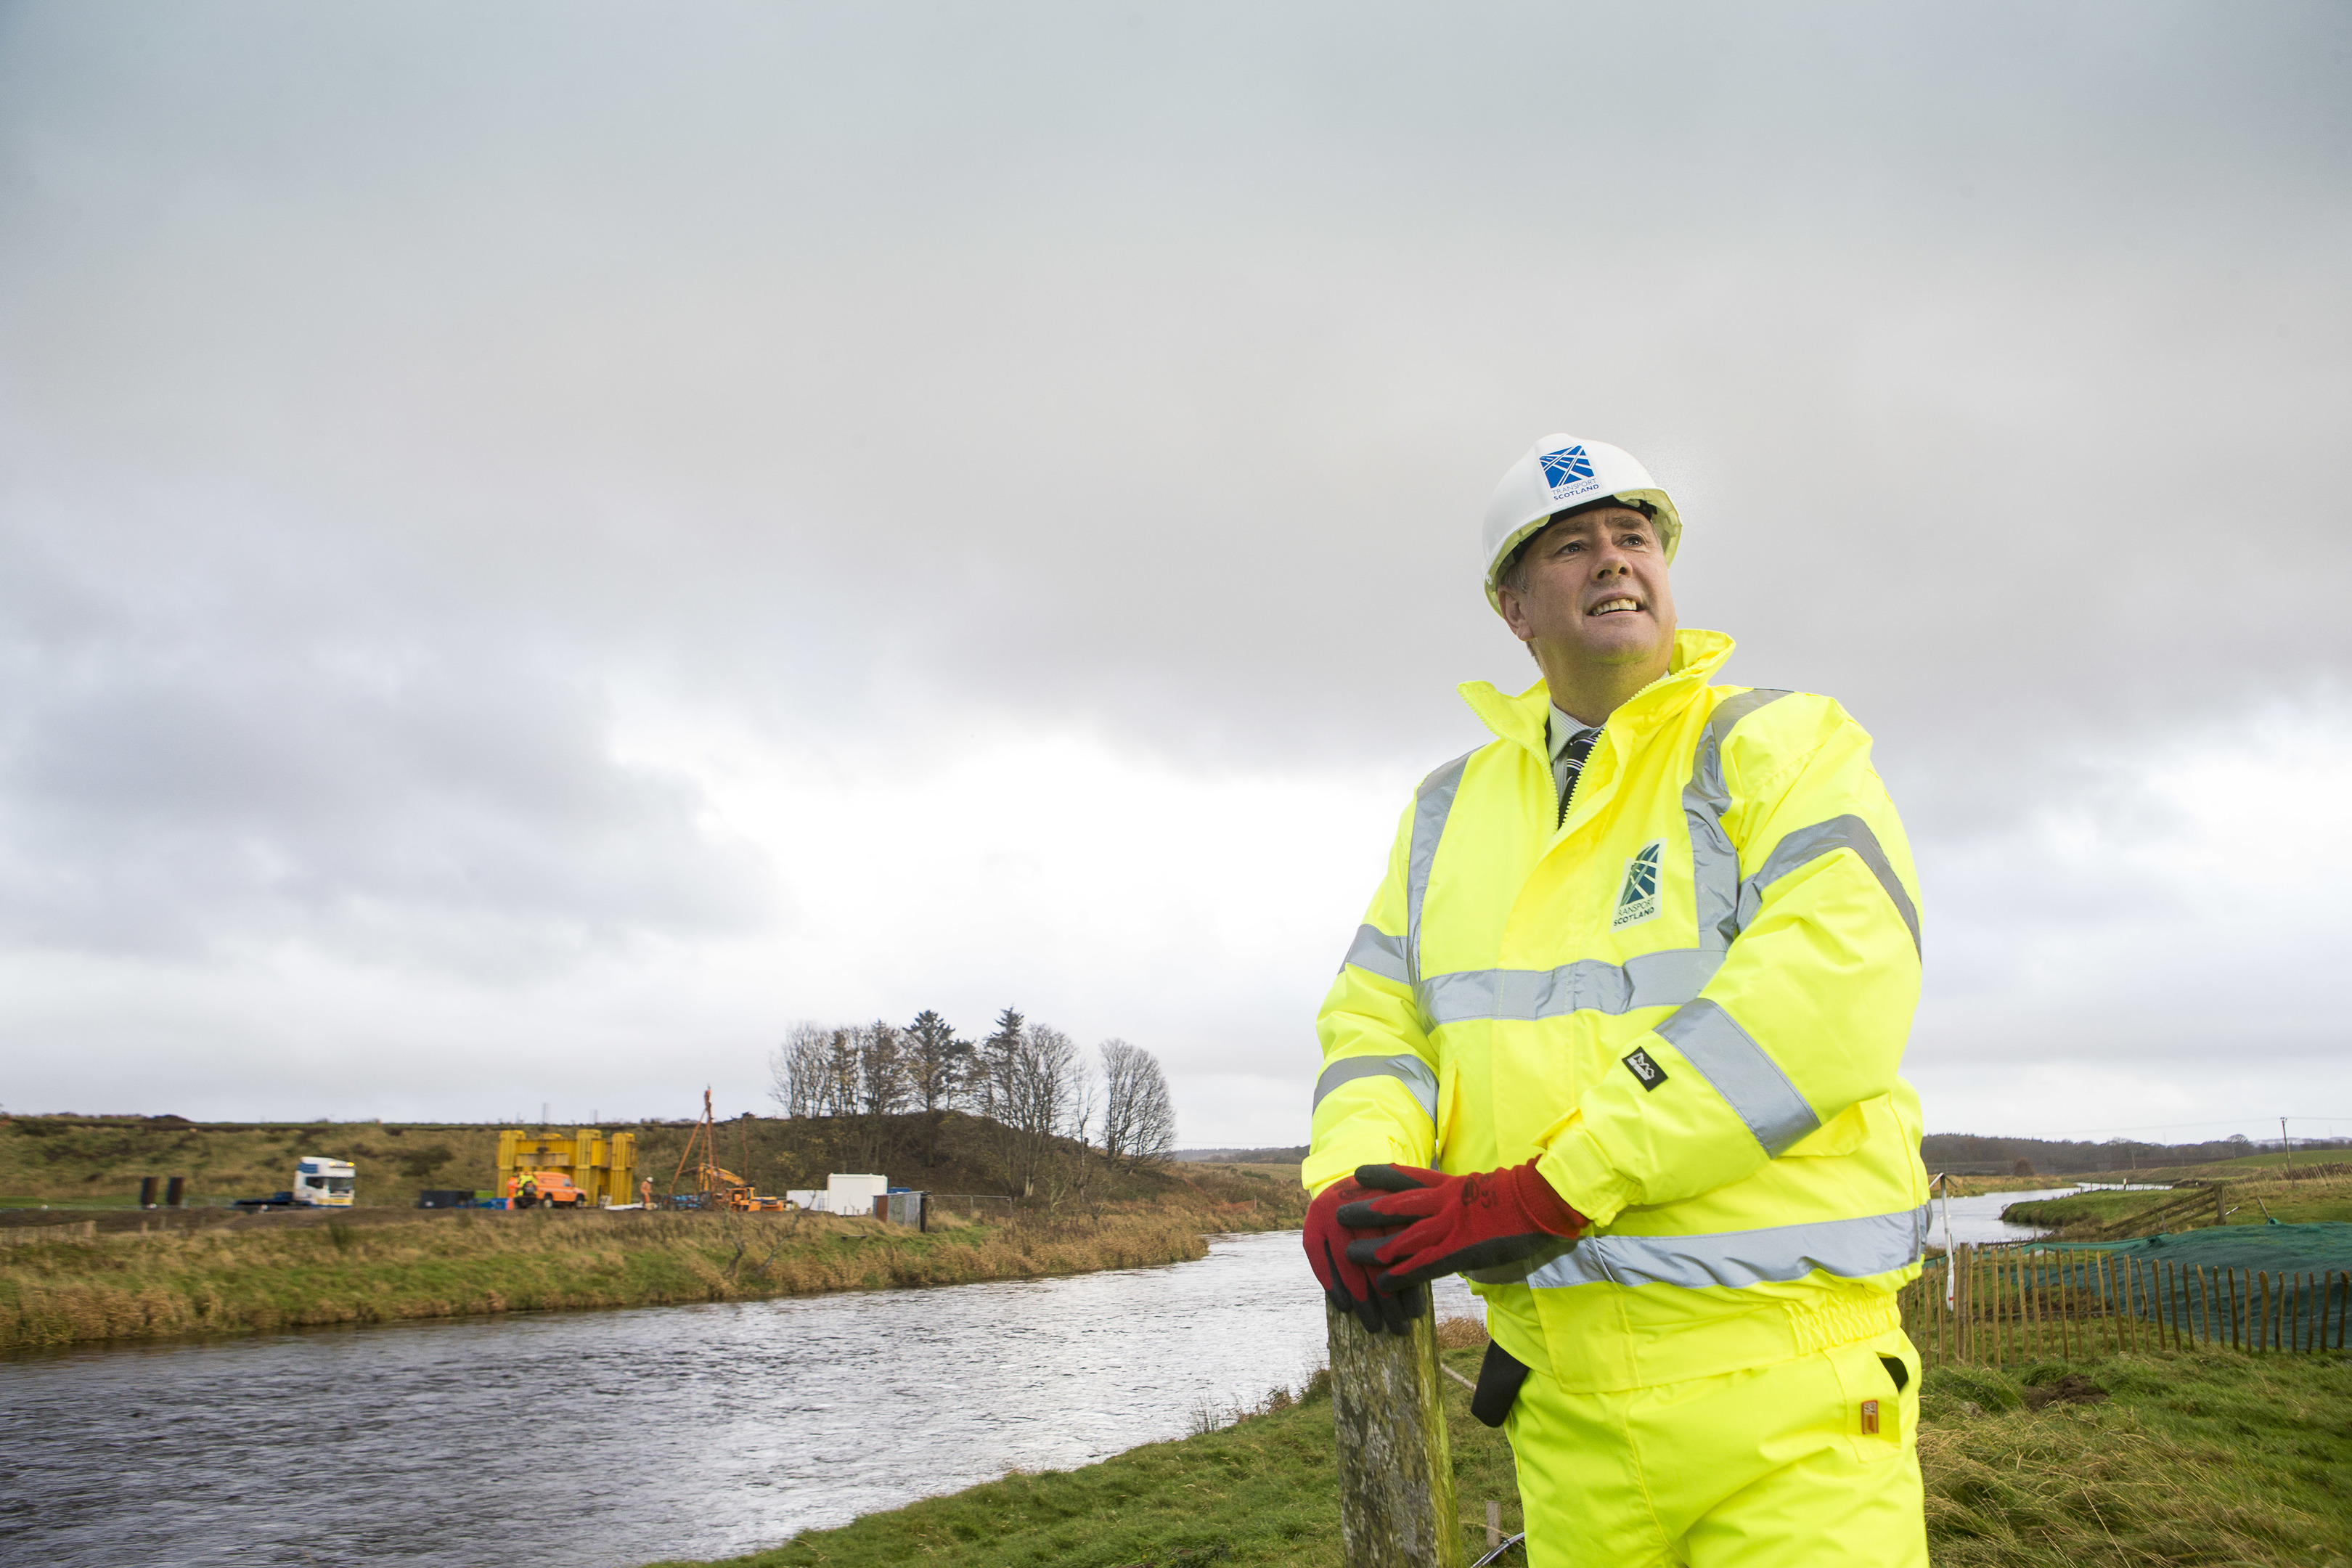 taking shape:  More than 1,300 people are now involved in the work  under way on the Aberdeen Western Peripheral Route (AWPR).